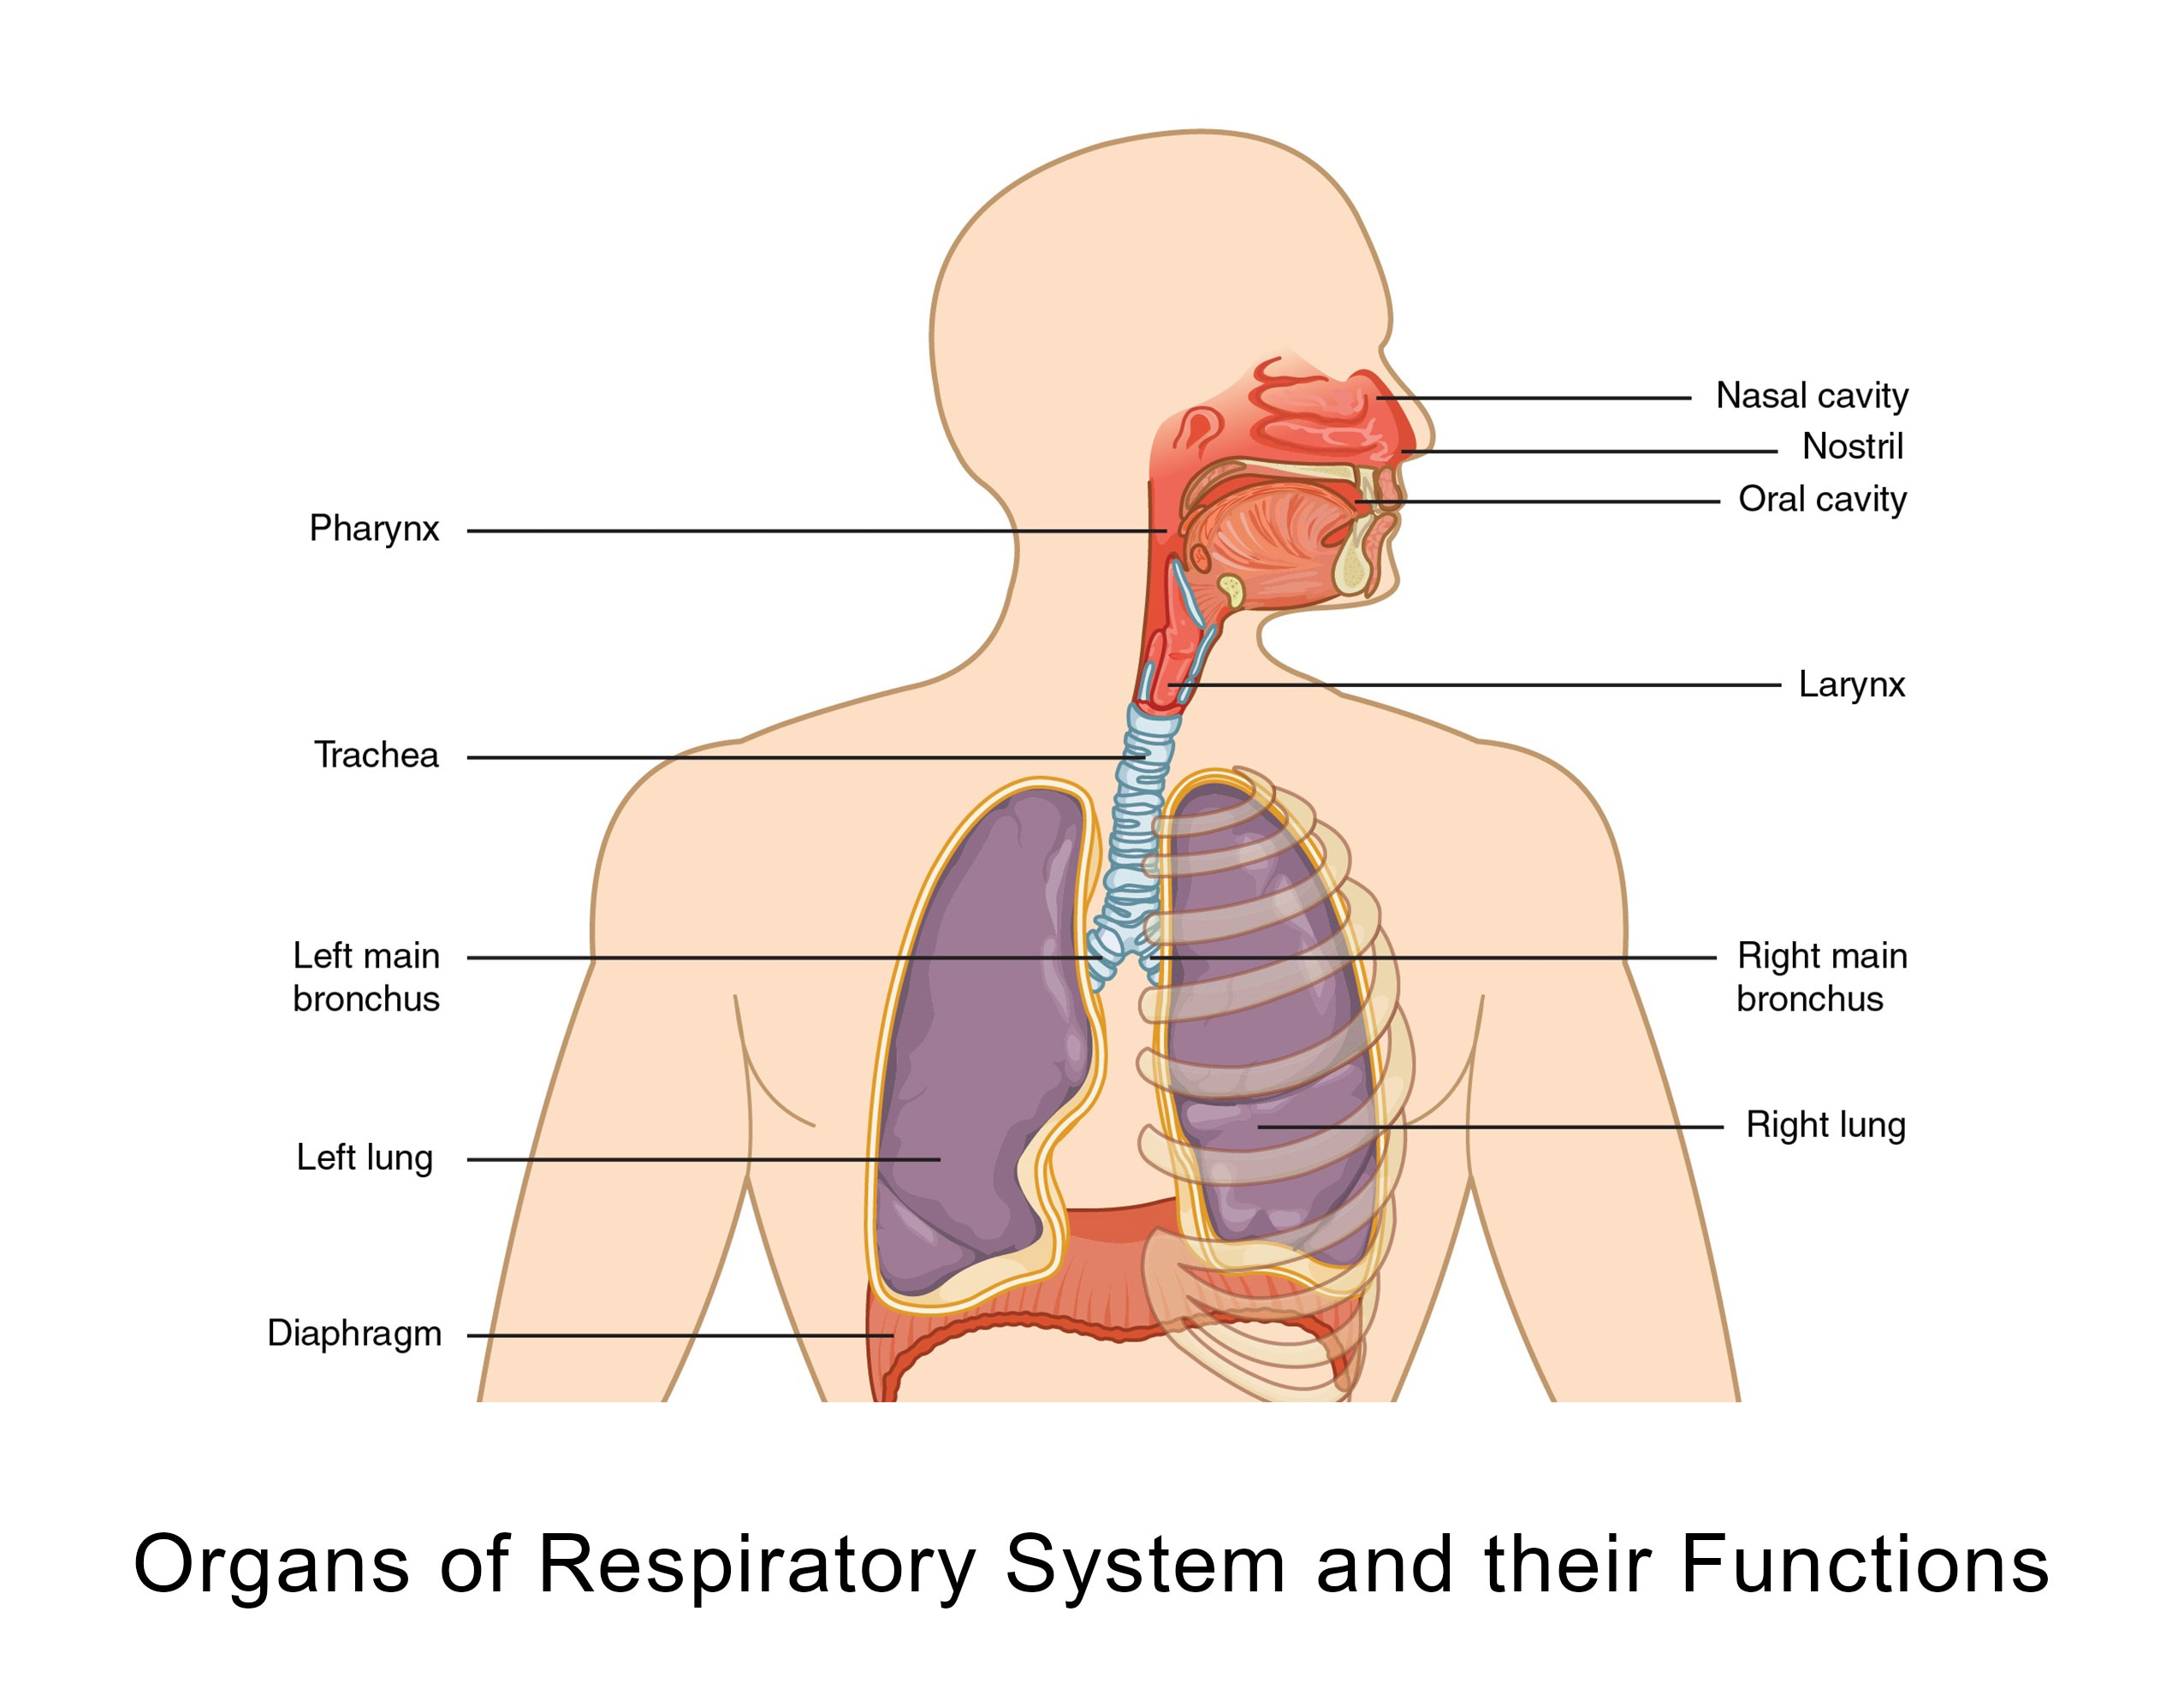 Organs of Respiratory System and their Functions 1